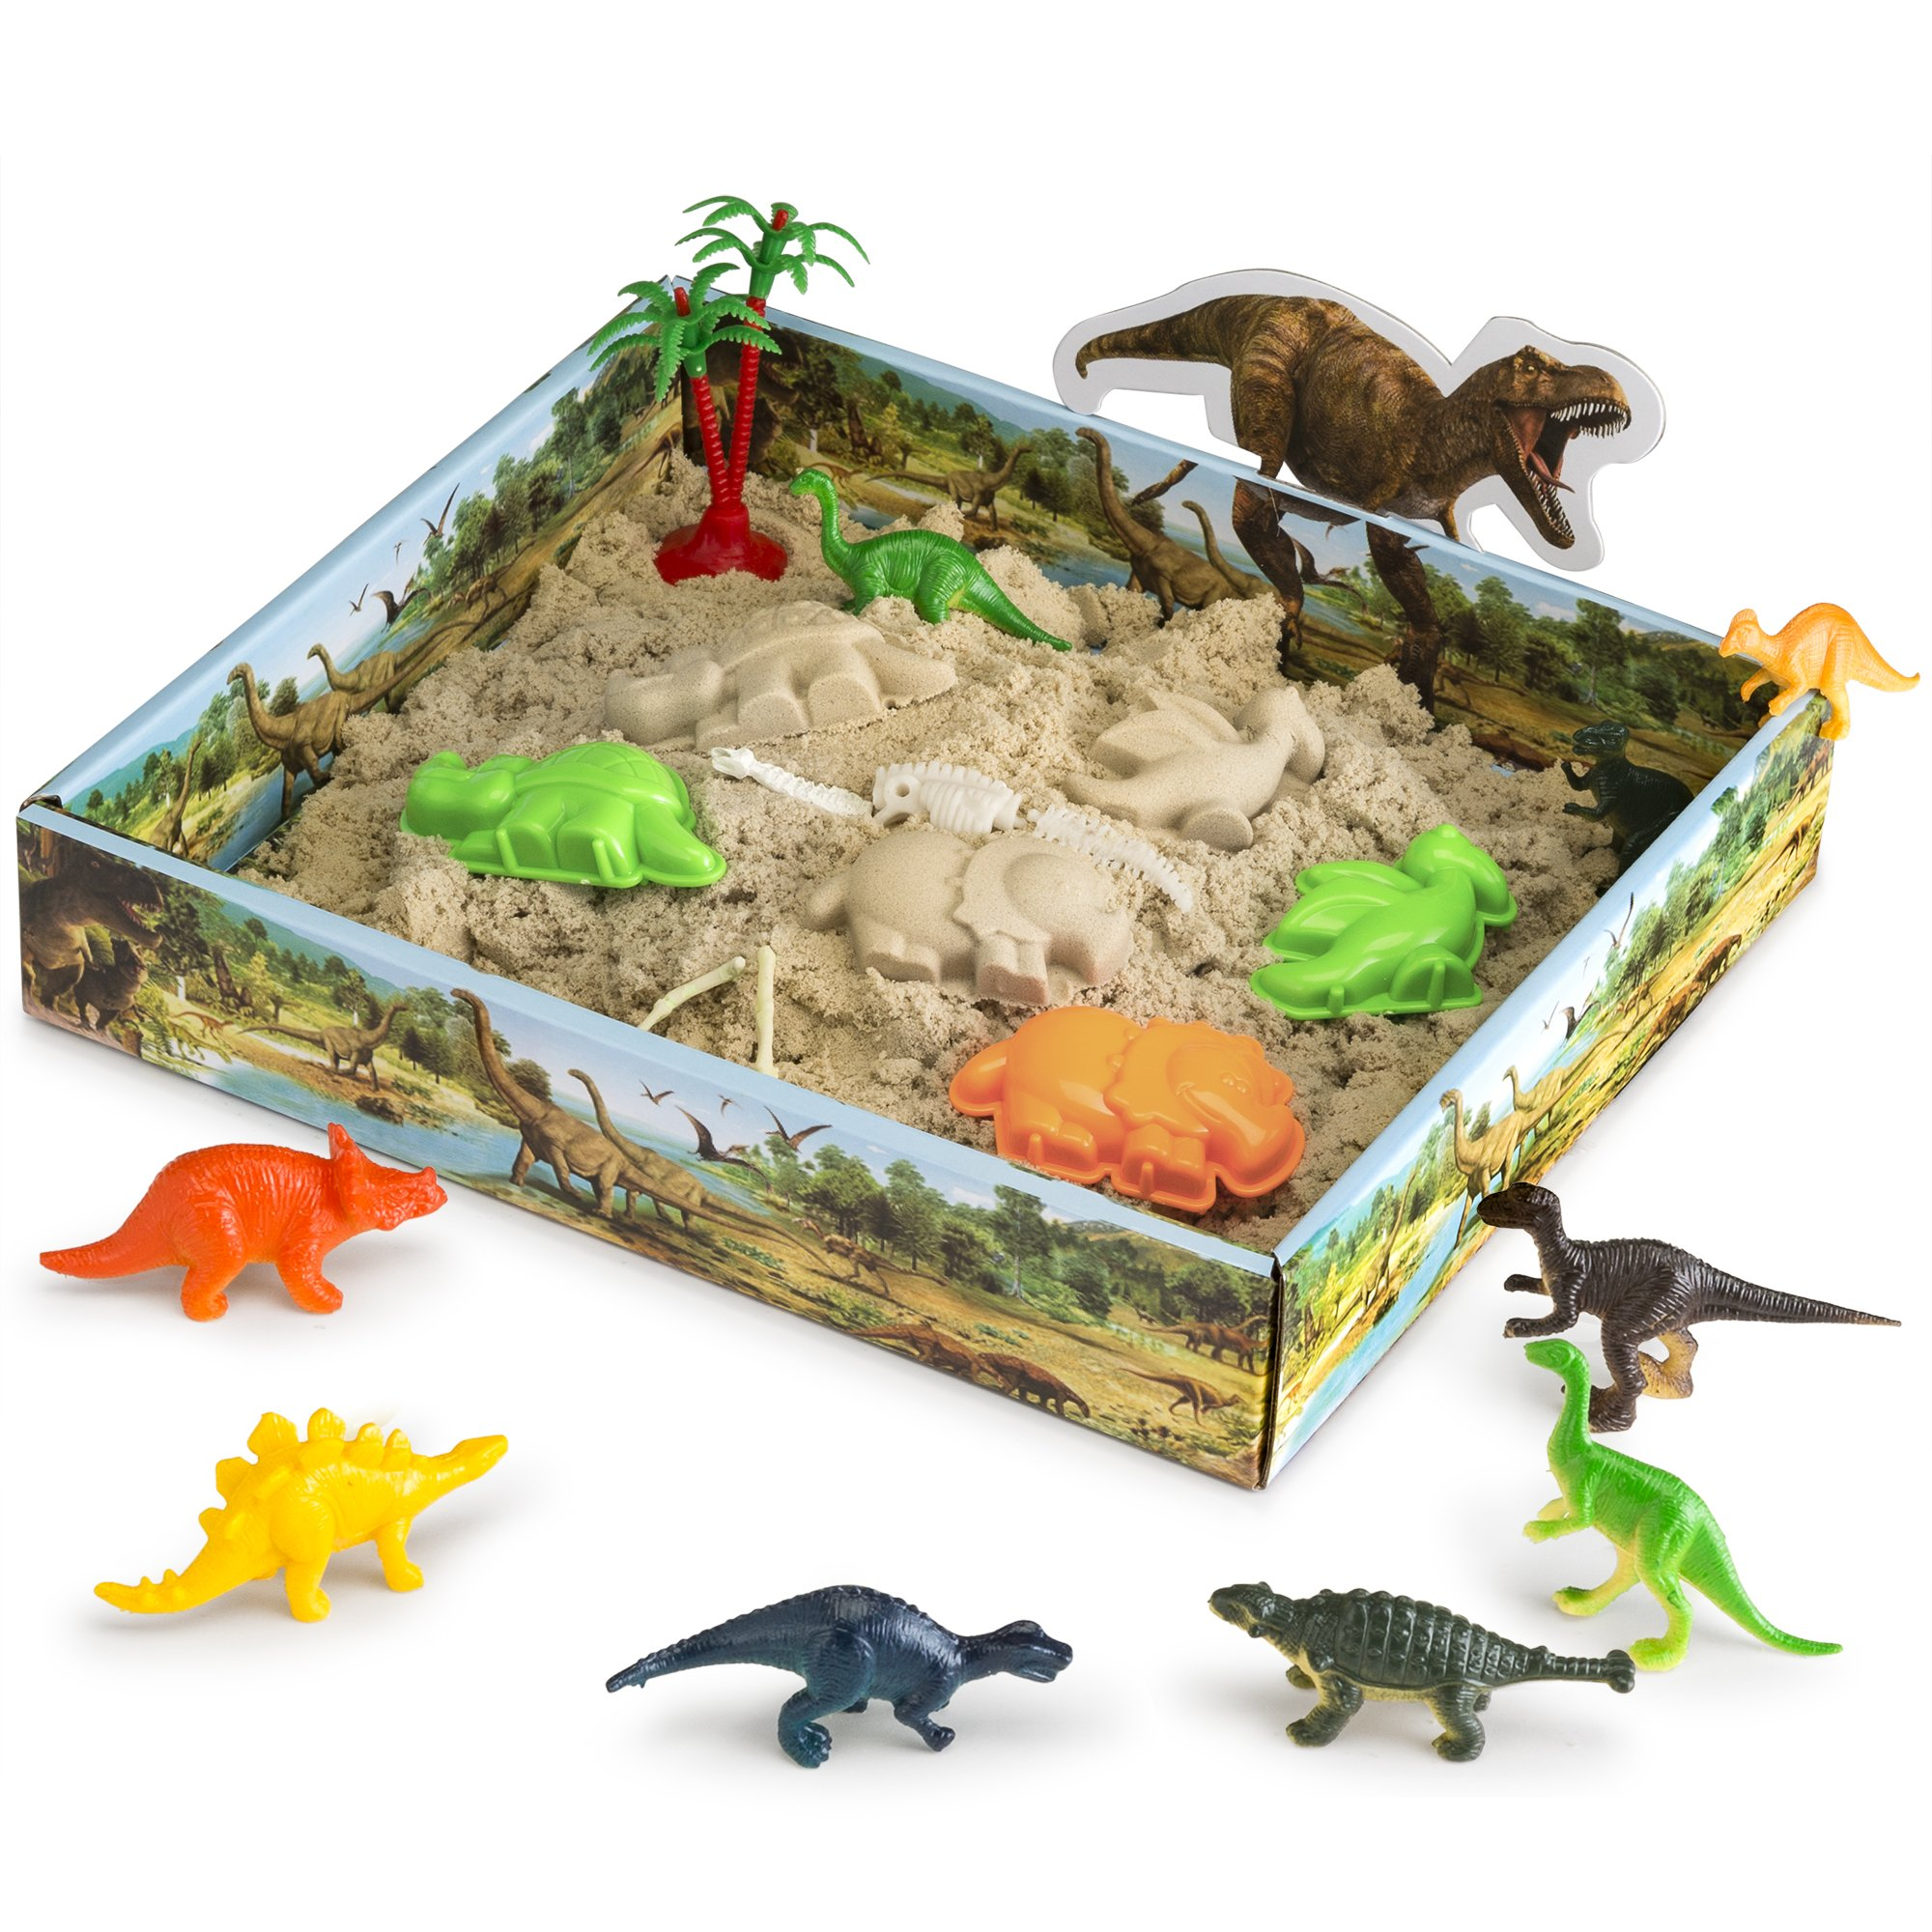 CoolSand 3D Sandbox - Dino Discovery Edition - Set Includes: 1 Pound Moldable Indoor Play Sand, Shaping Molds, Dinosaur Figures and 3D Tray by CoolSand